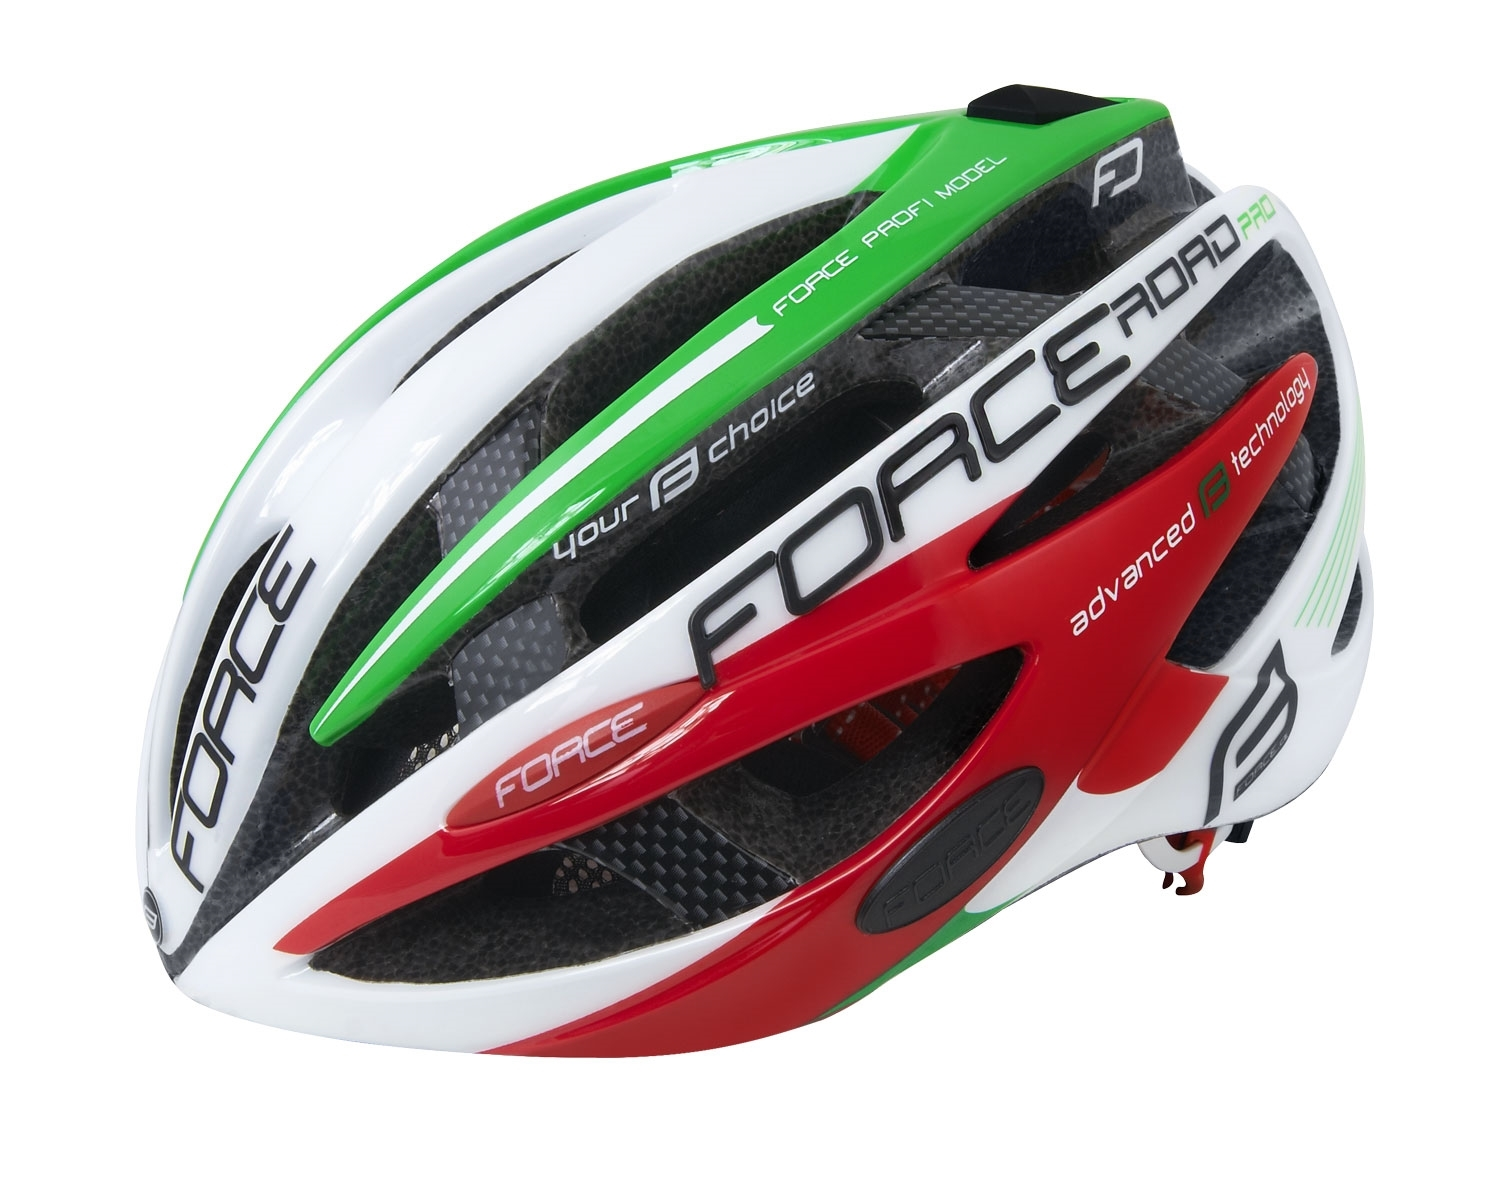 přilba FORCE ROAD PRO, ITALY S - M